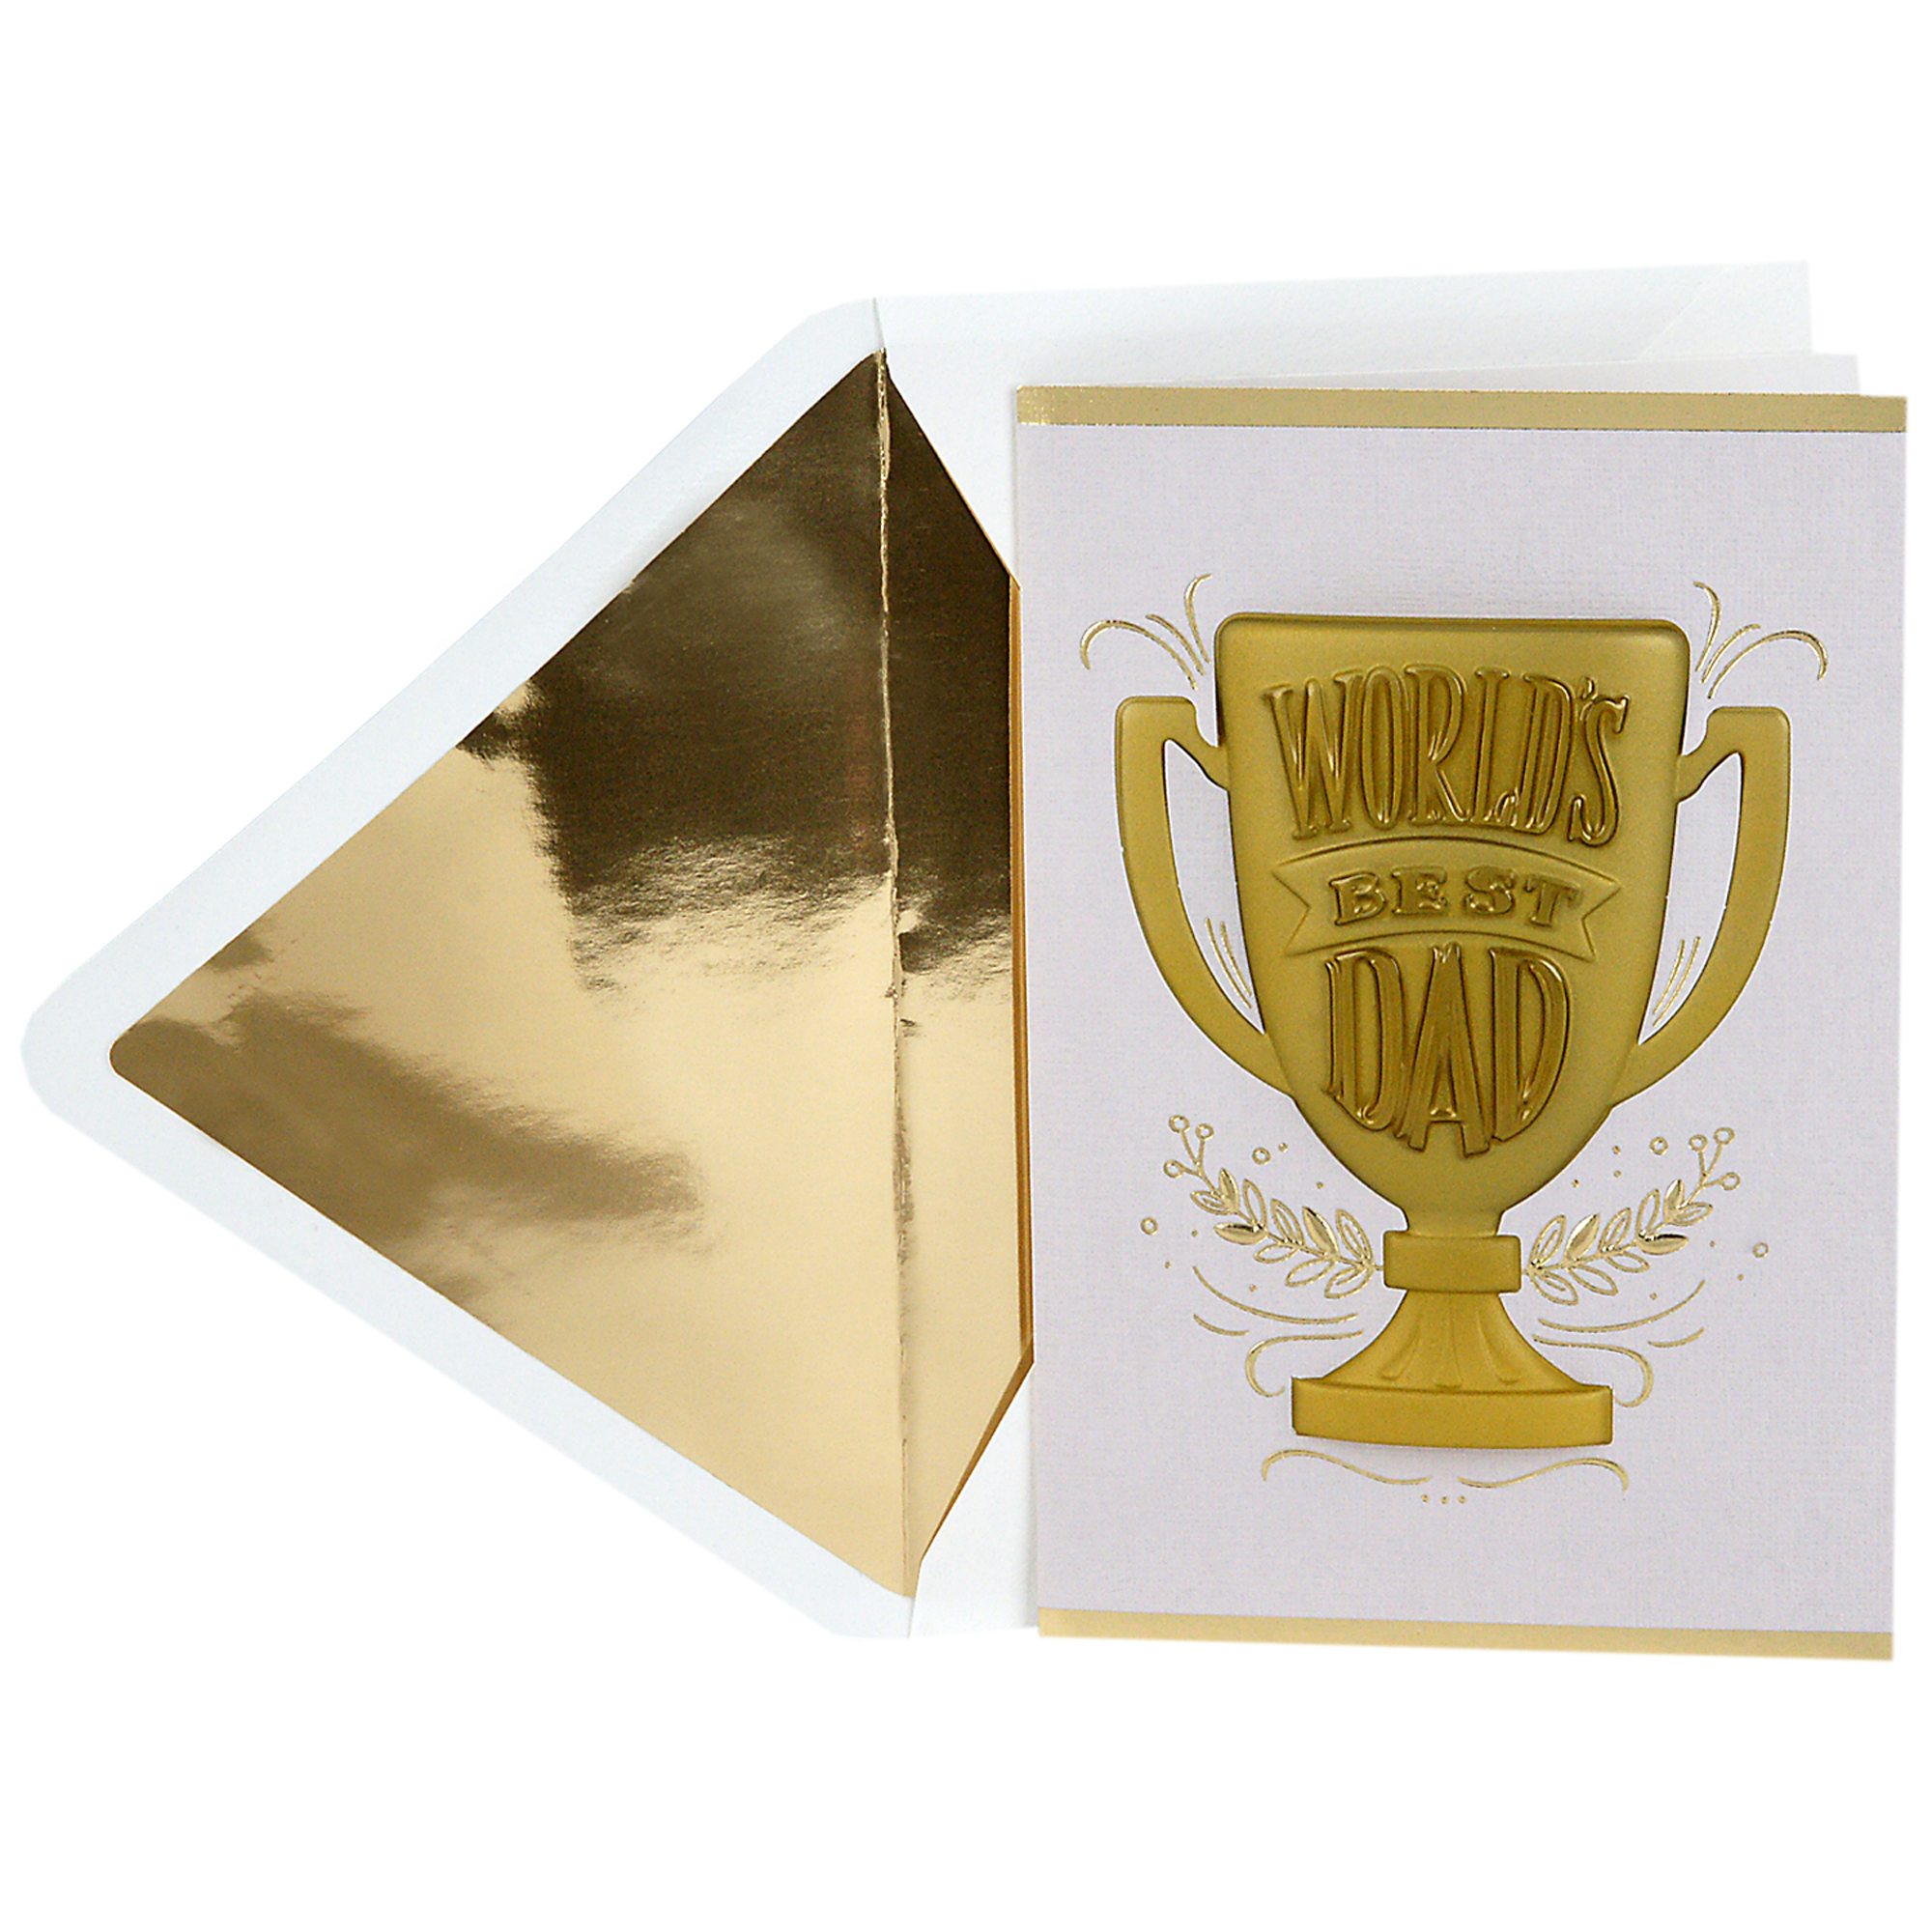 Hallmark Signature, World's Best Dad Trophy, Father's Day Greeting Card